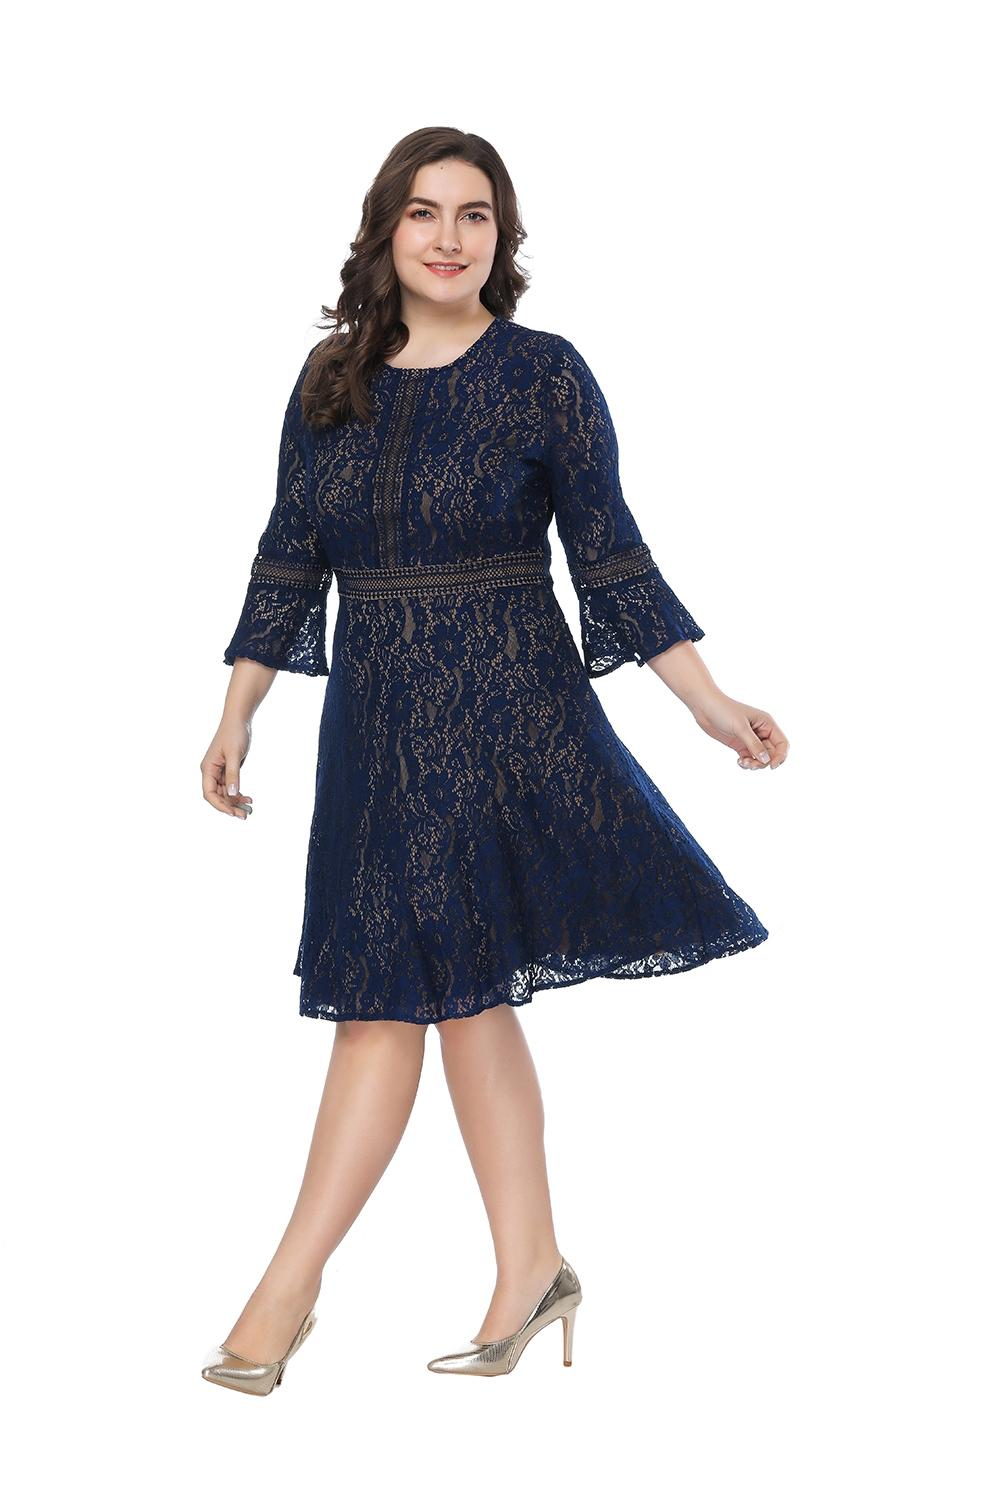 Plus Size Blue Lace Elegant Cocktail Dress